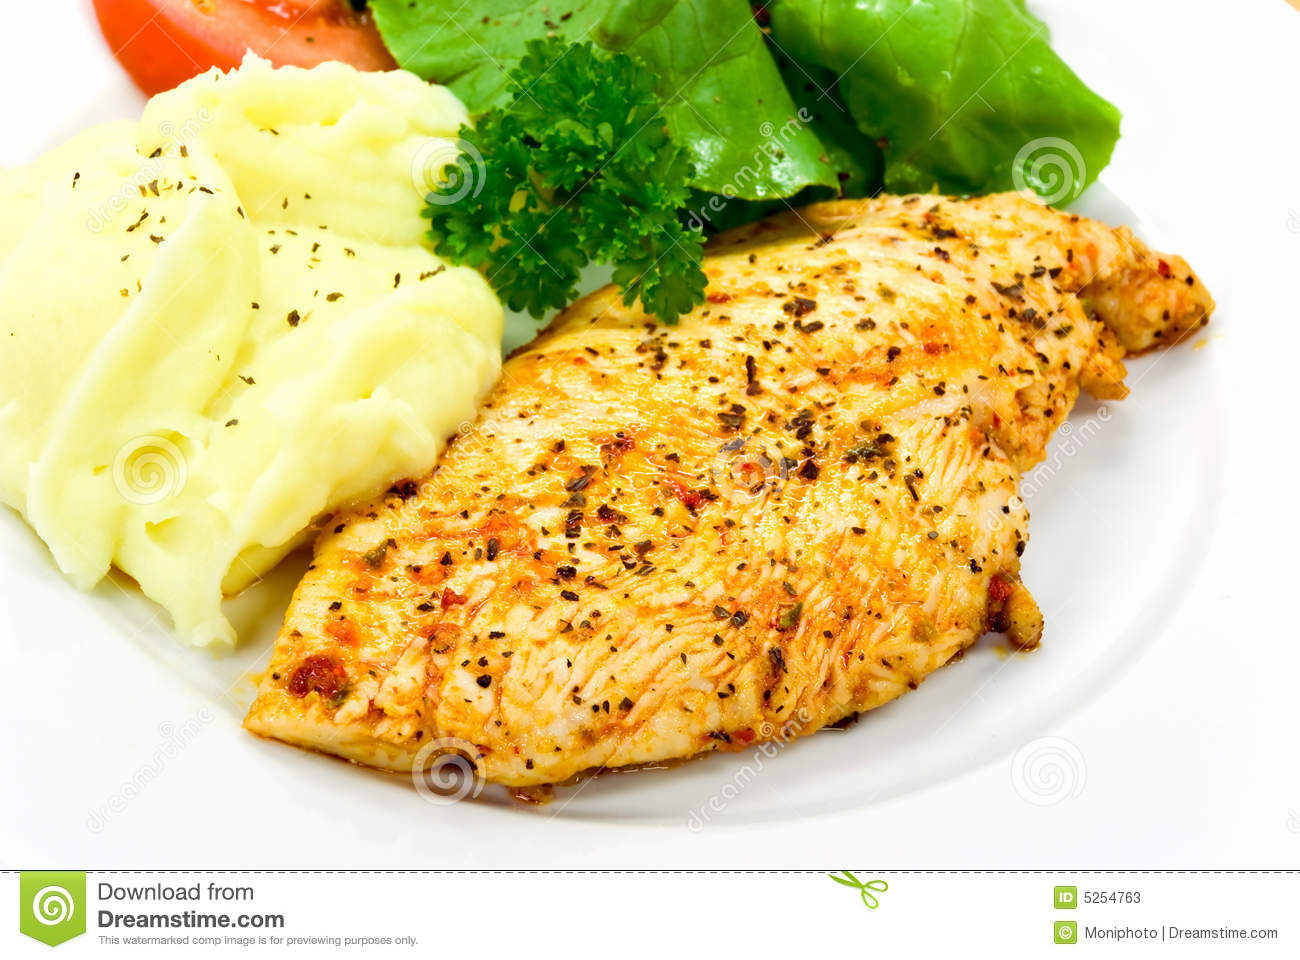 Chicken Breast - Marinated And Baked,with Salad Stock Photos - Image ...